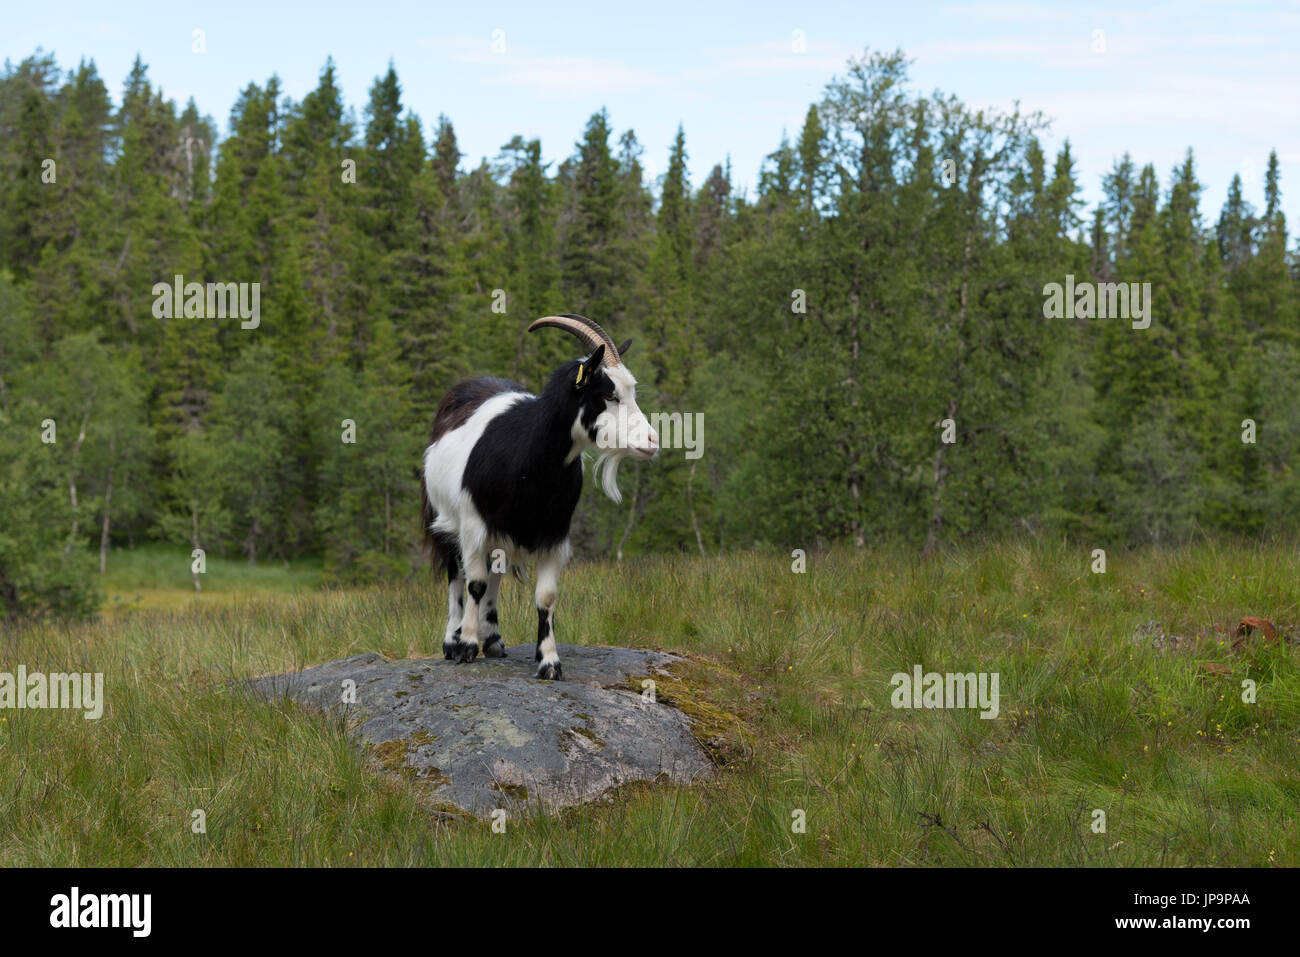 A goat is grazing at a mountain farm, it's their summer pasture. Dalarna, Sweden - Stock Image